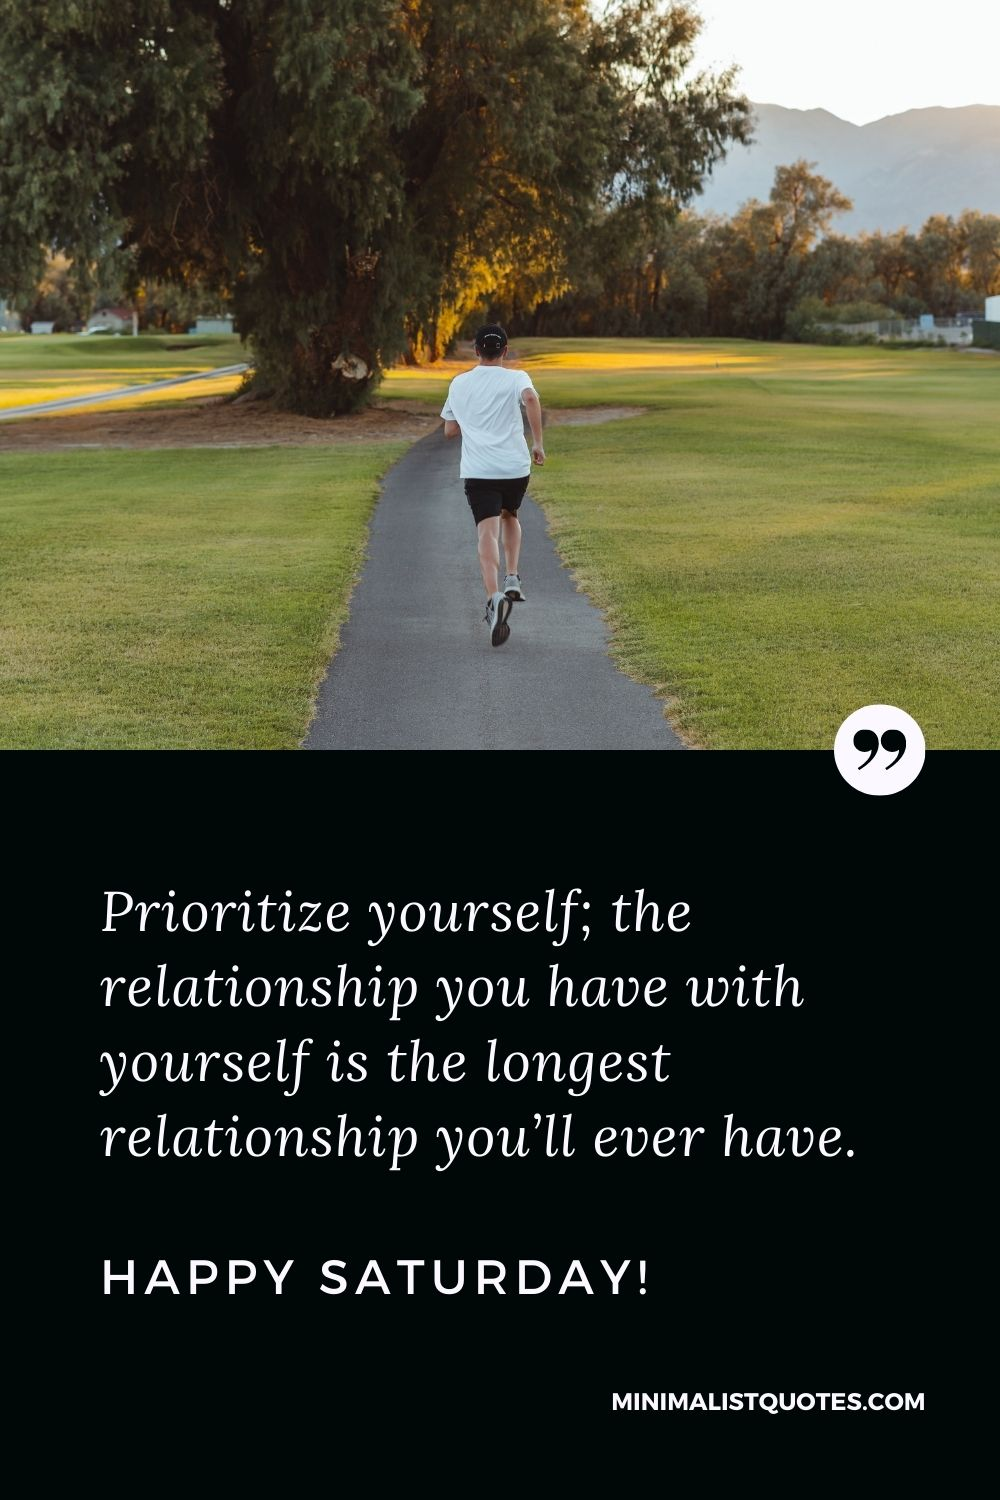 Saturday Quote & Wish With Image: Prioritize yourself; the relationship you have with yourself is the longest relationship you'll ever have. Happy Saturday!